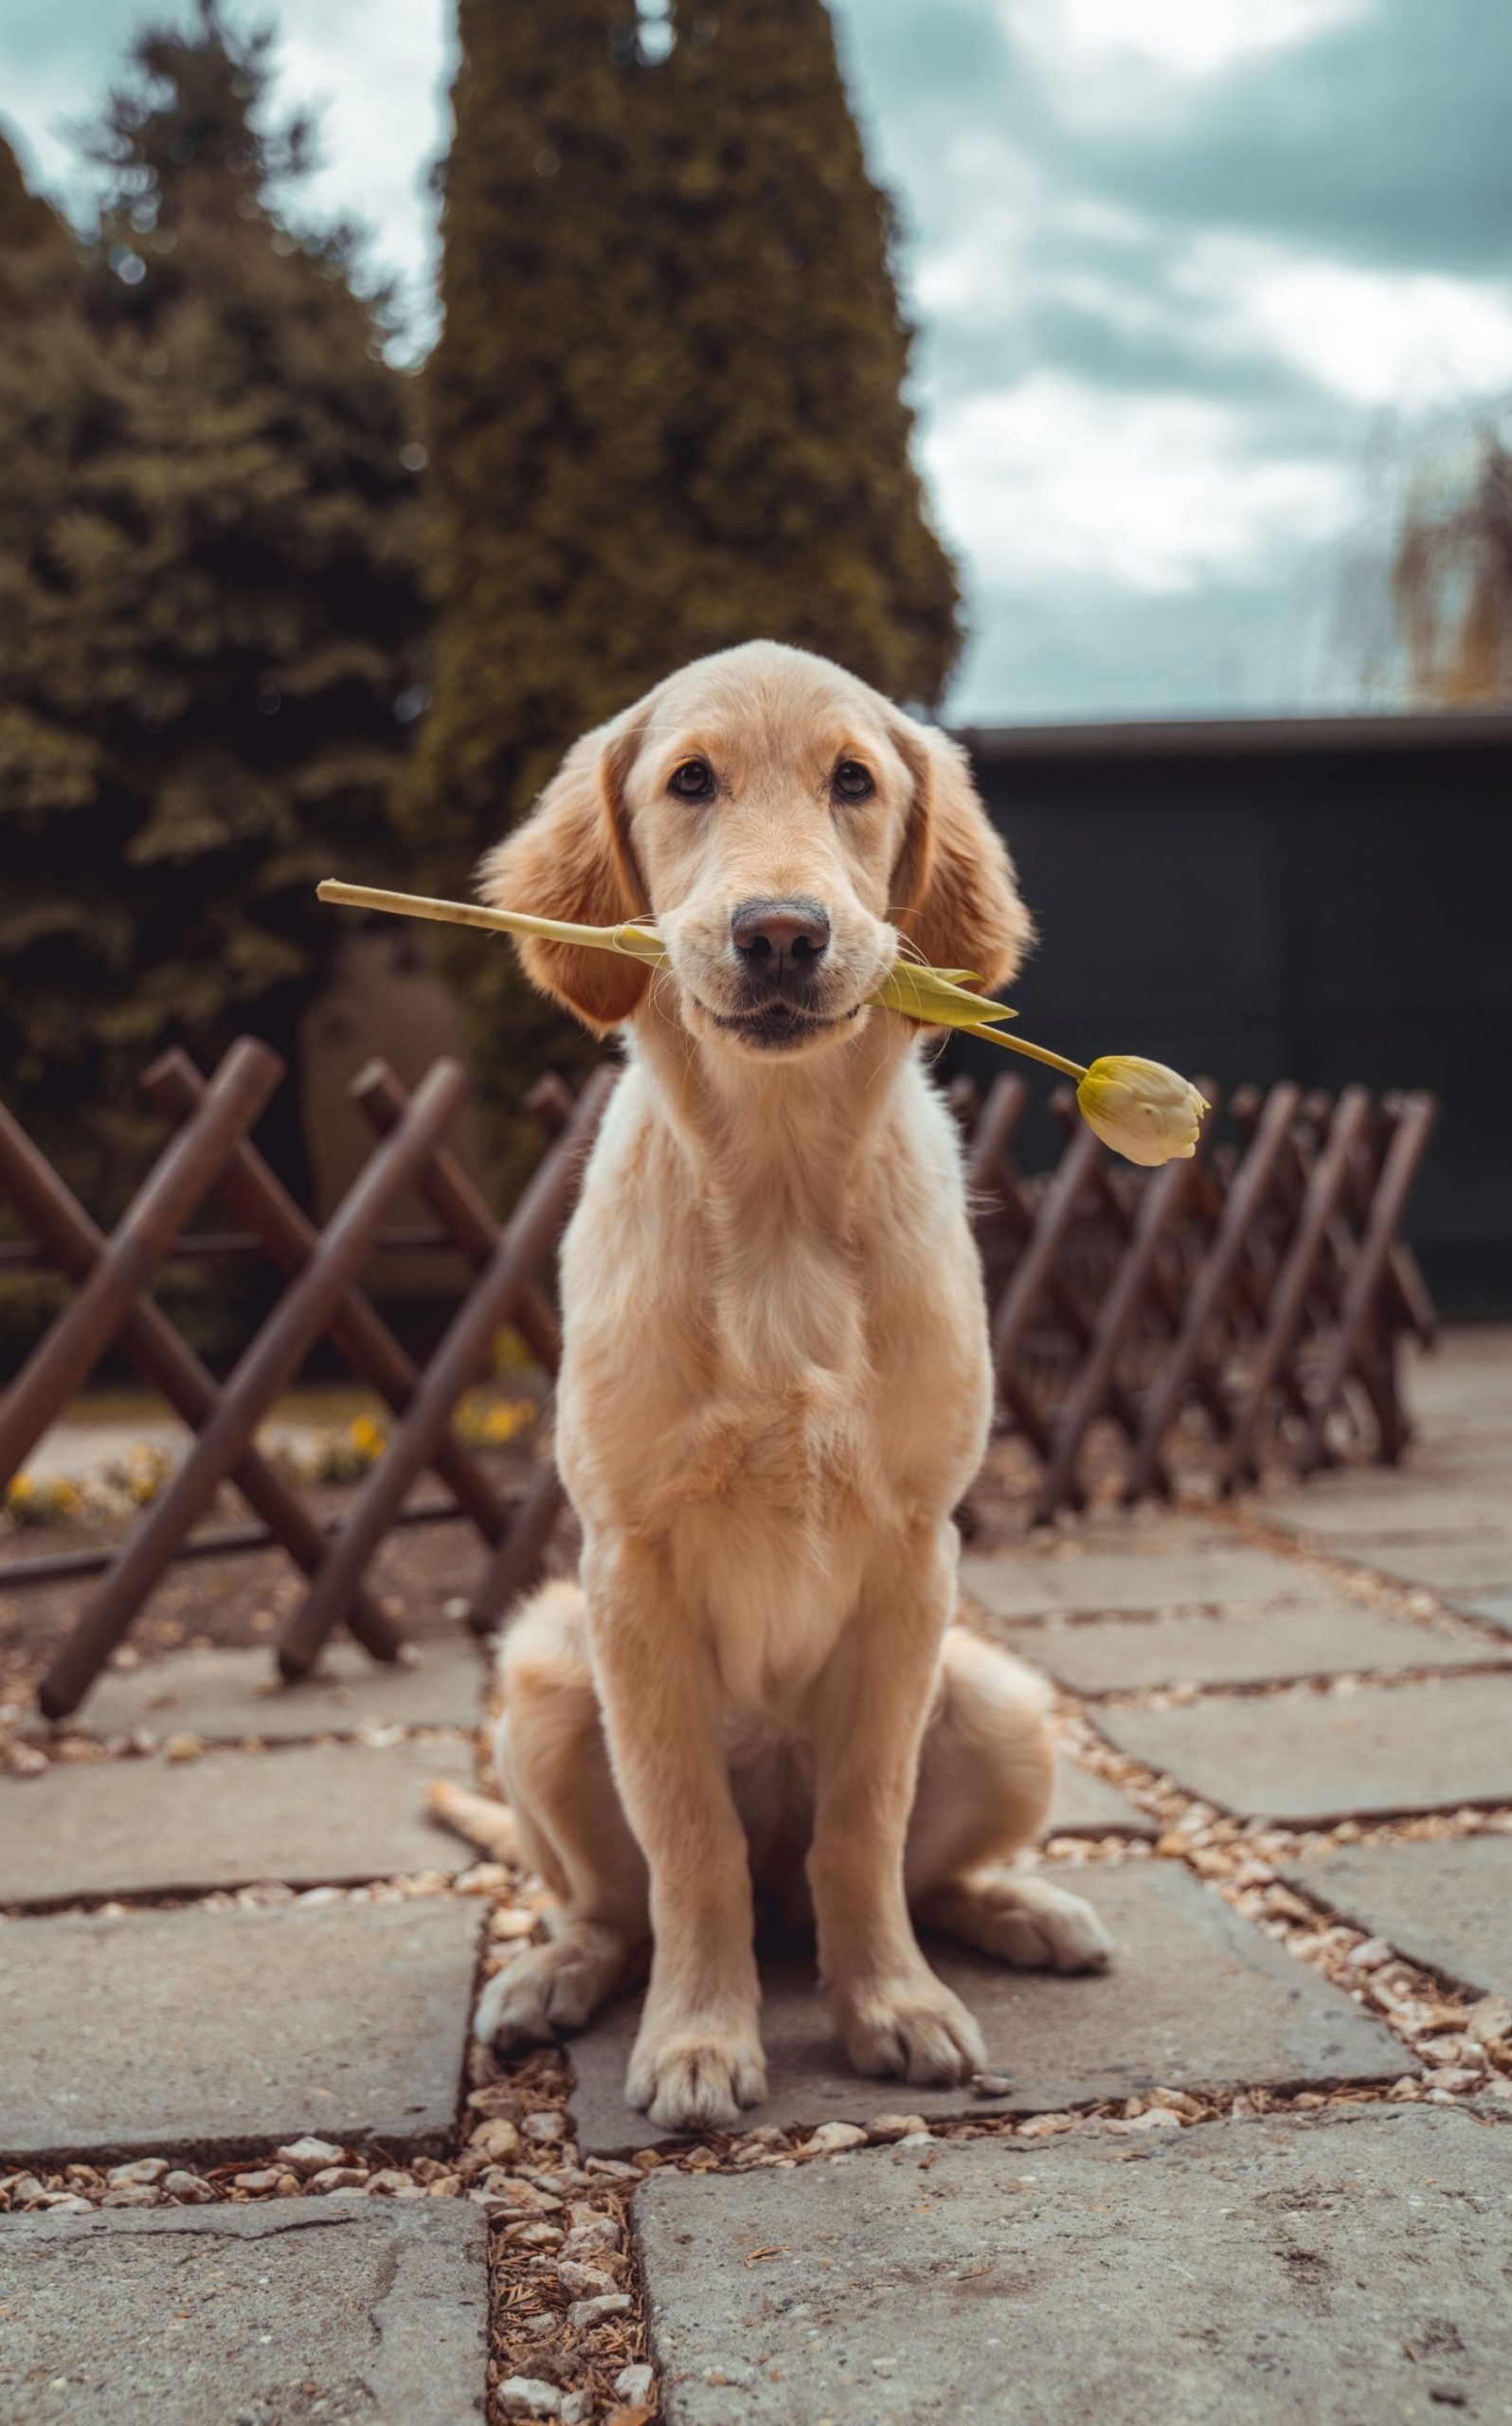 puppy holding a flower in his mouth